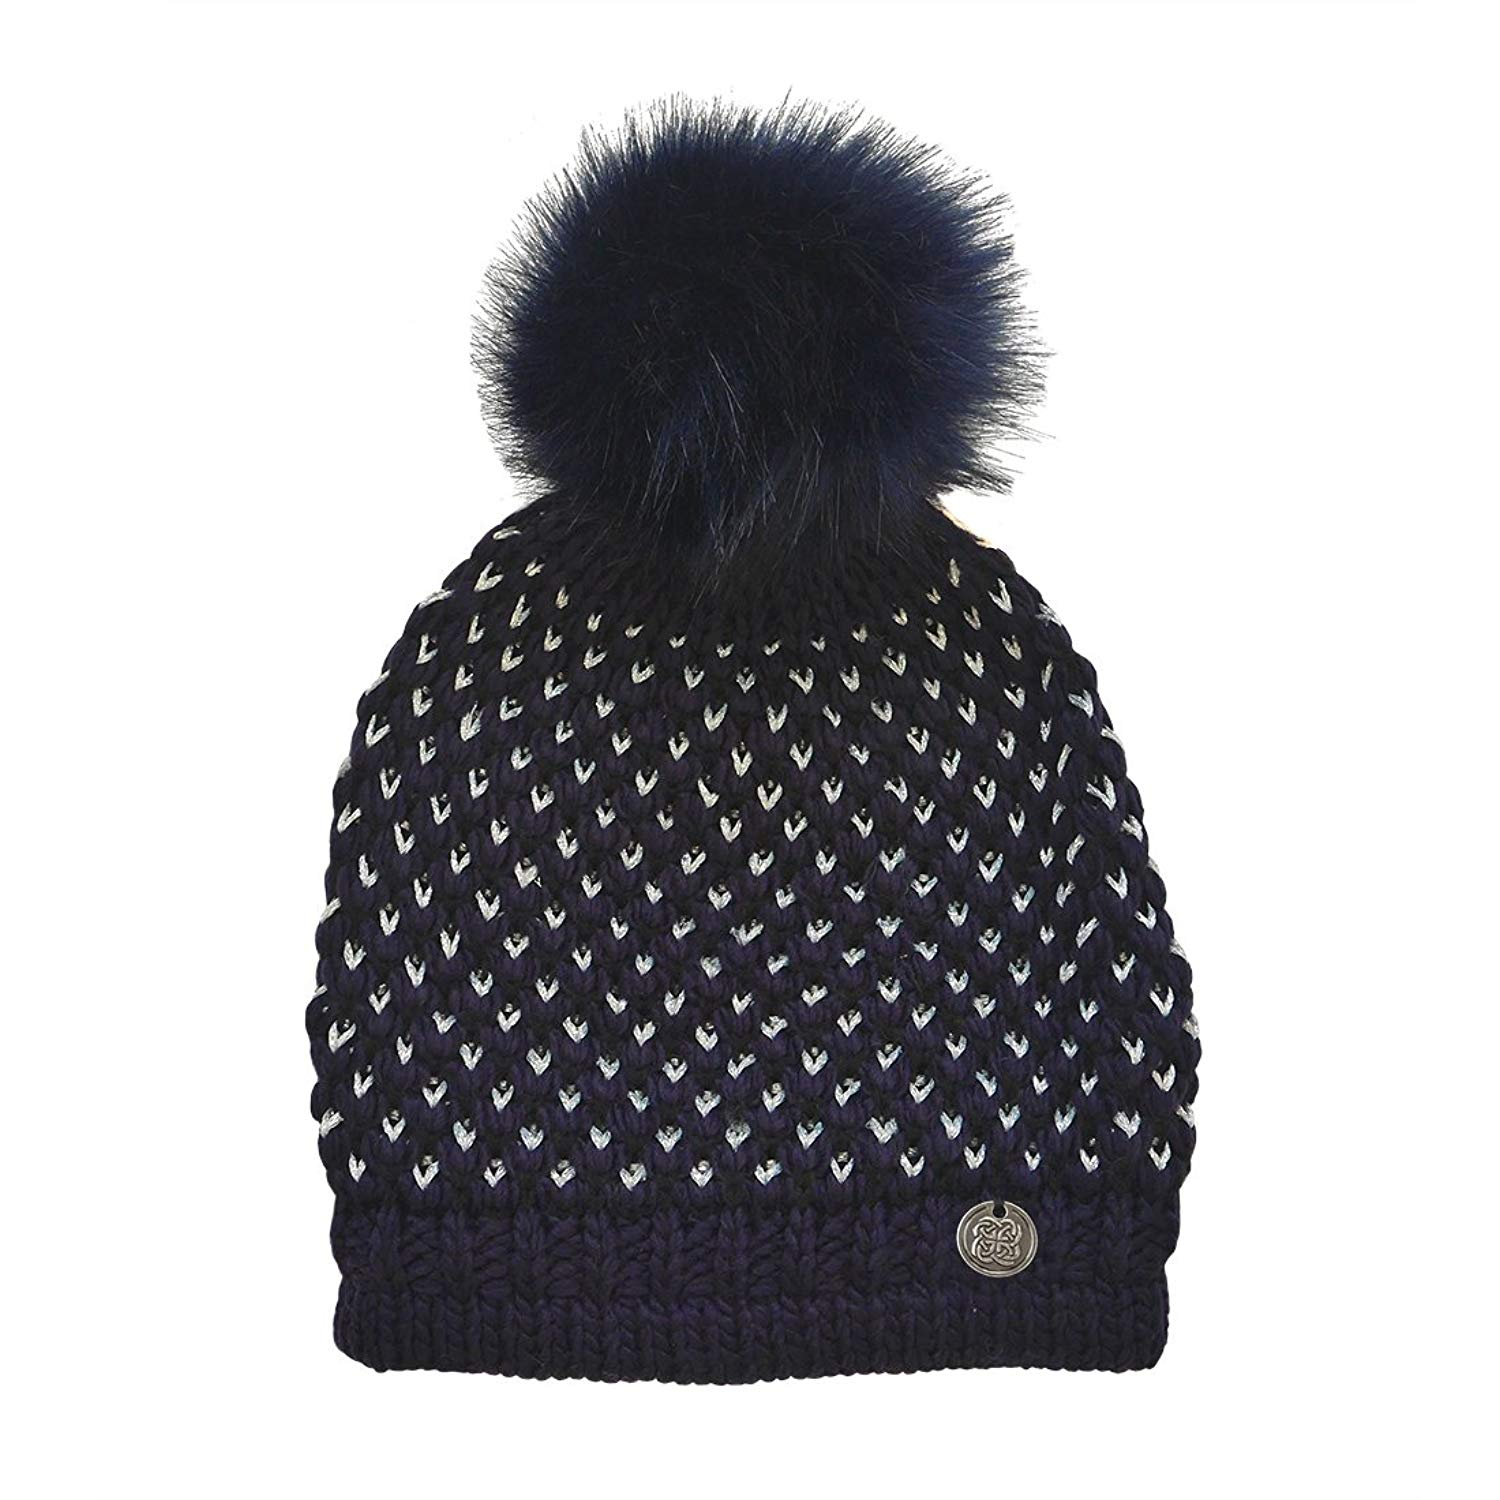 3704a8203d9 Get Quotations · Patrick Francis Navy and Silver Lurex Fur Bobble Hat